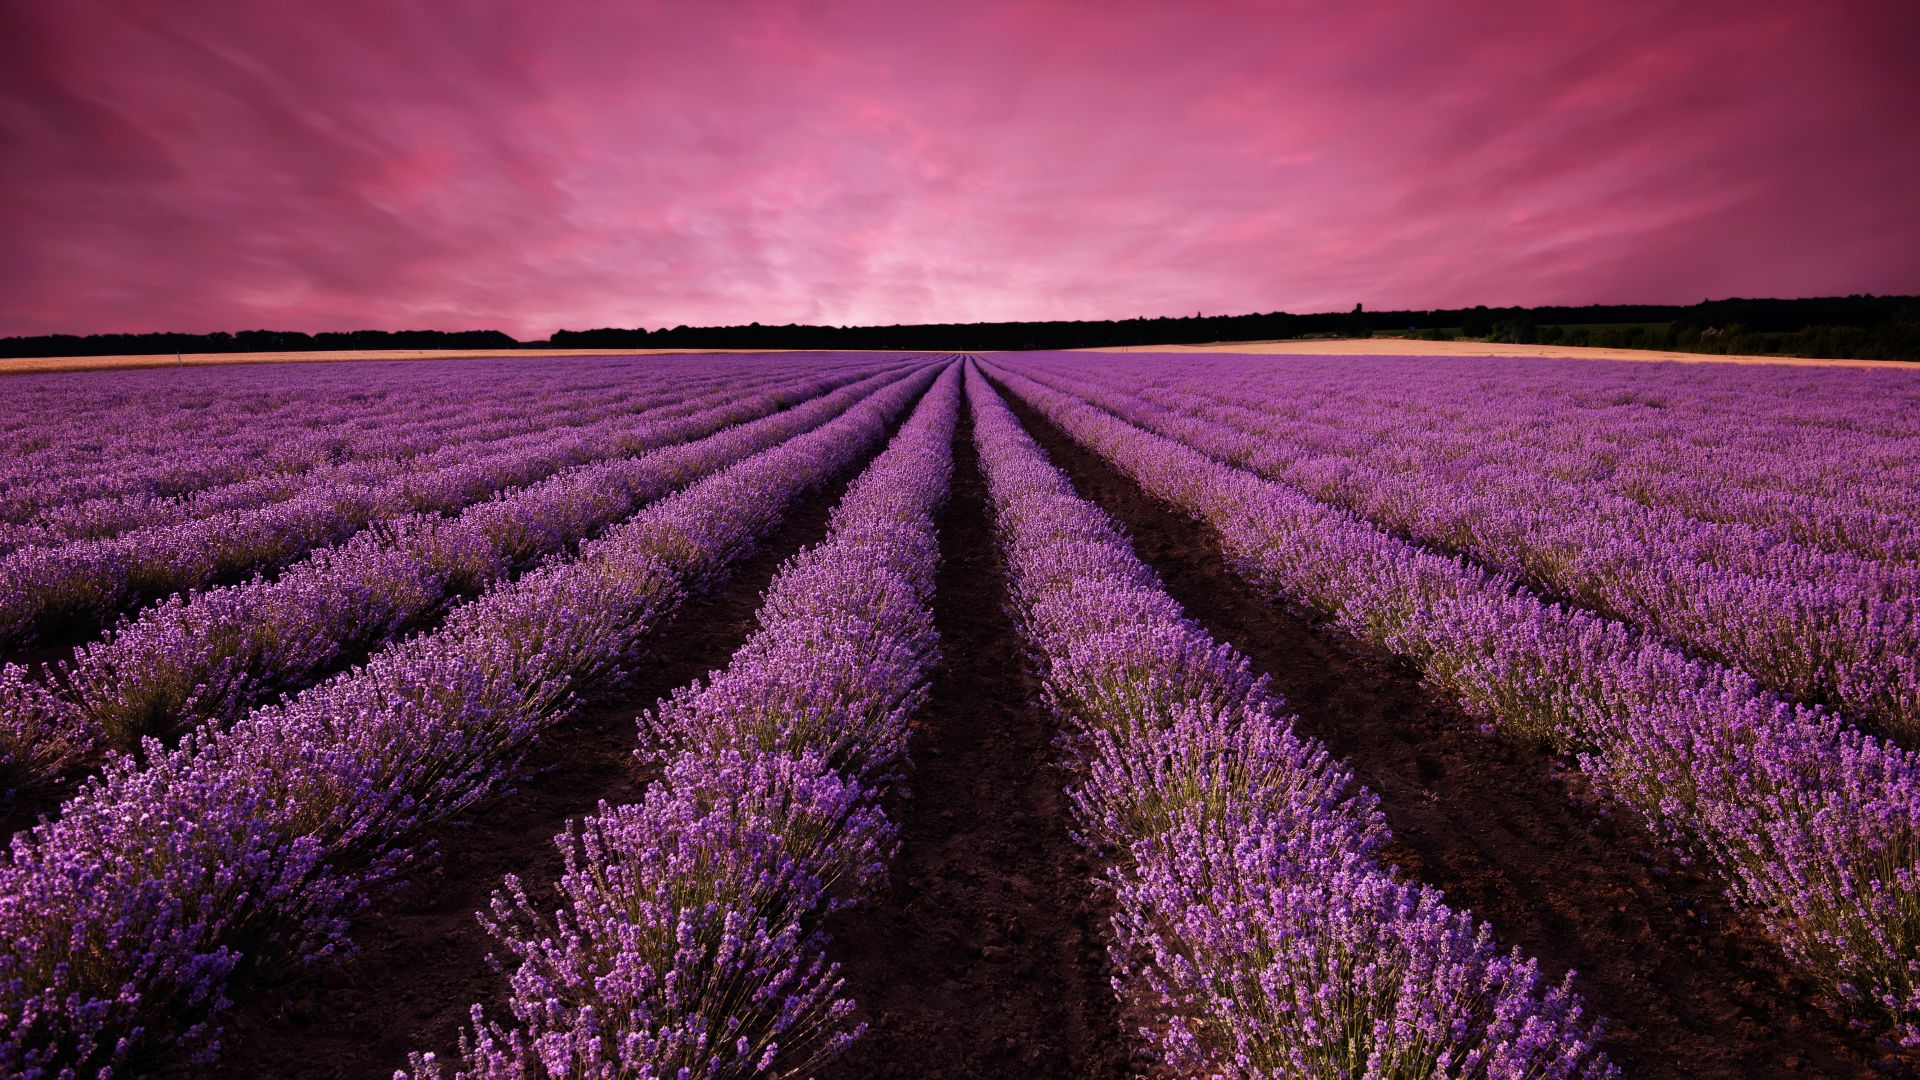 лаванда, поле, Прованс, Франция, lavender, field, sky, mountain, Provence, France, Europe, 5k (horizontal)